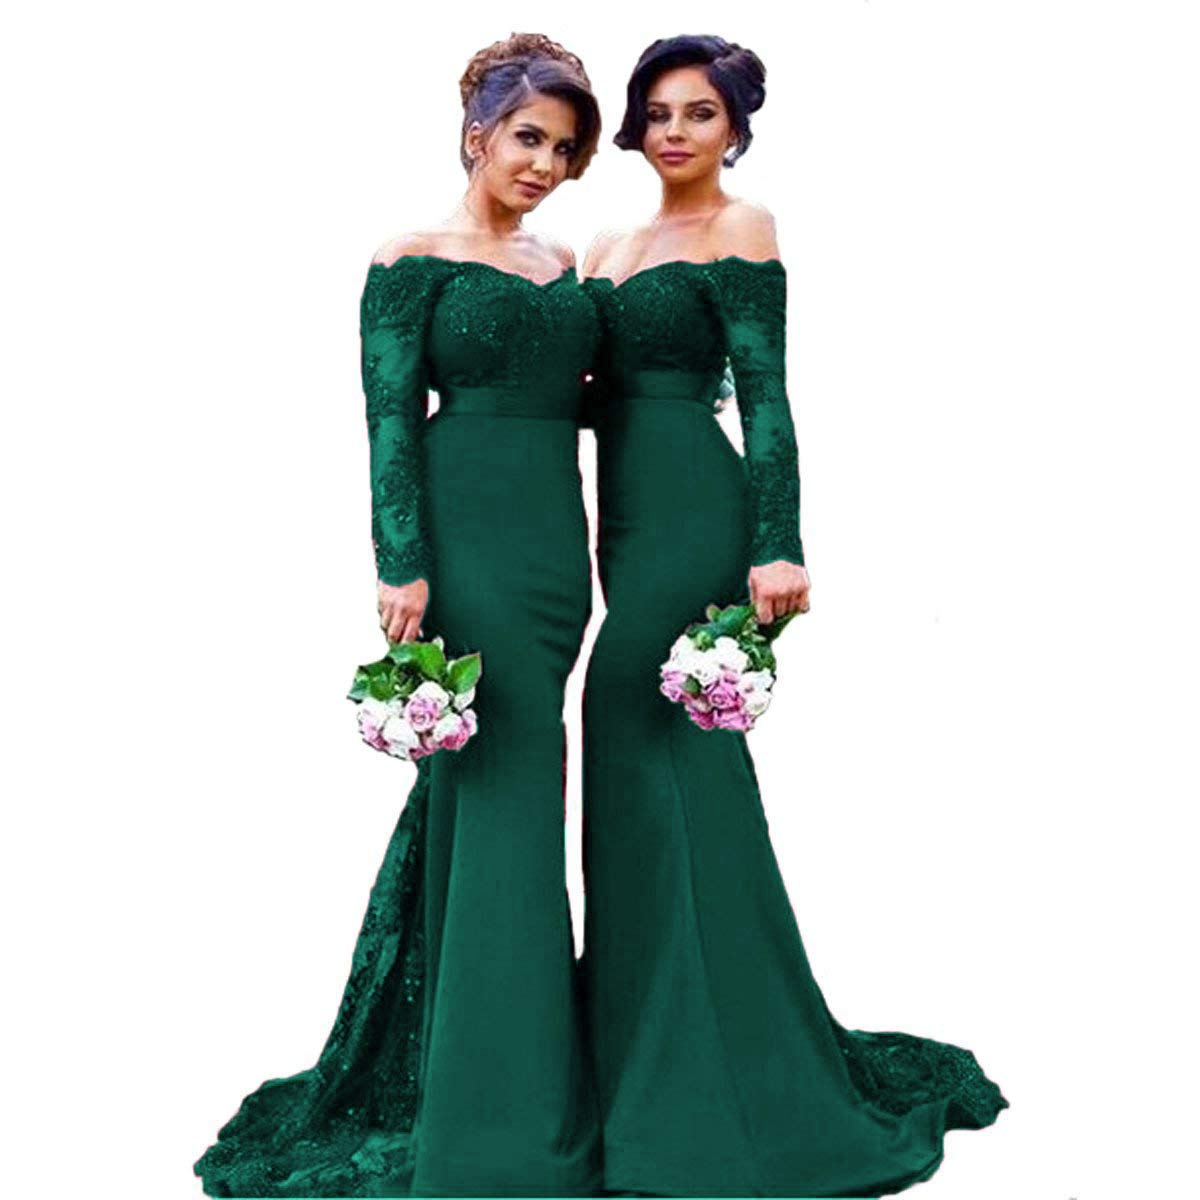 Dark Green Liaoye Women's Lace Prom Dress Mermaid Off Shoulder Long Sleeve Bridesmaid Dresses Prom Evening Dress Formal Gowns